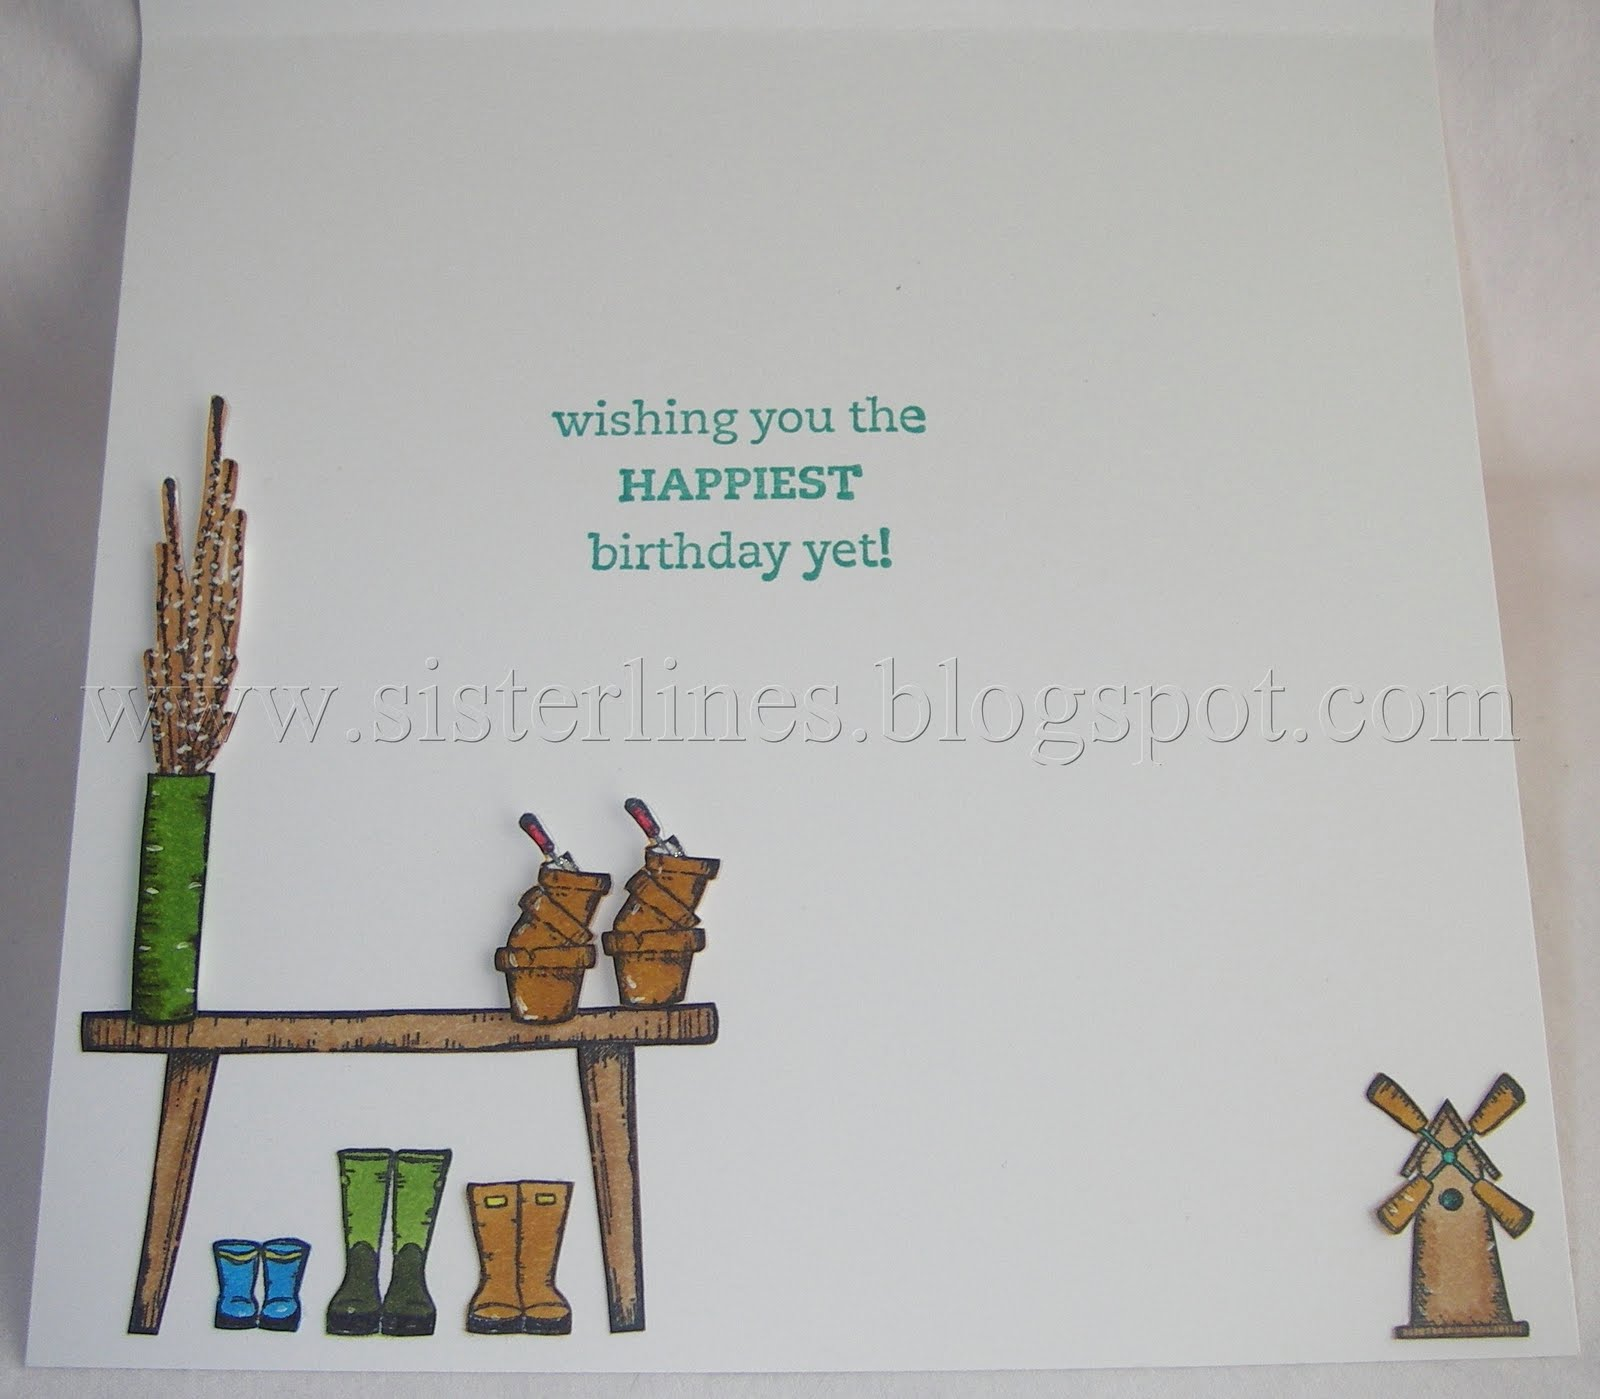 Sisterlines Space in Time 60th birthday card – How to End a Birthday Card